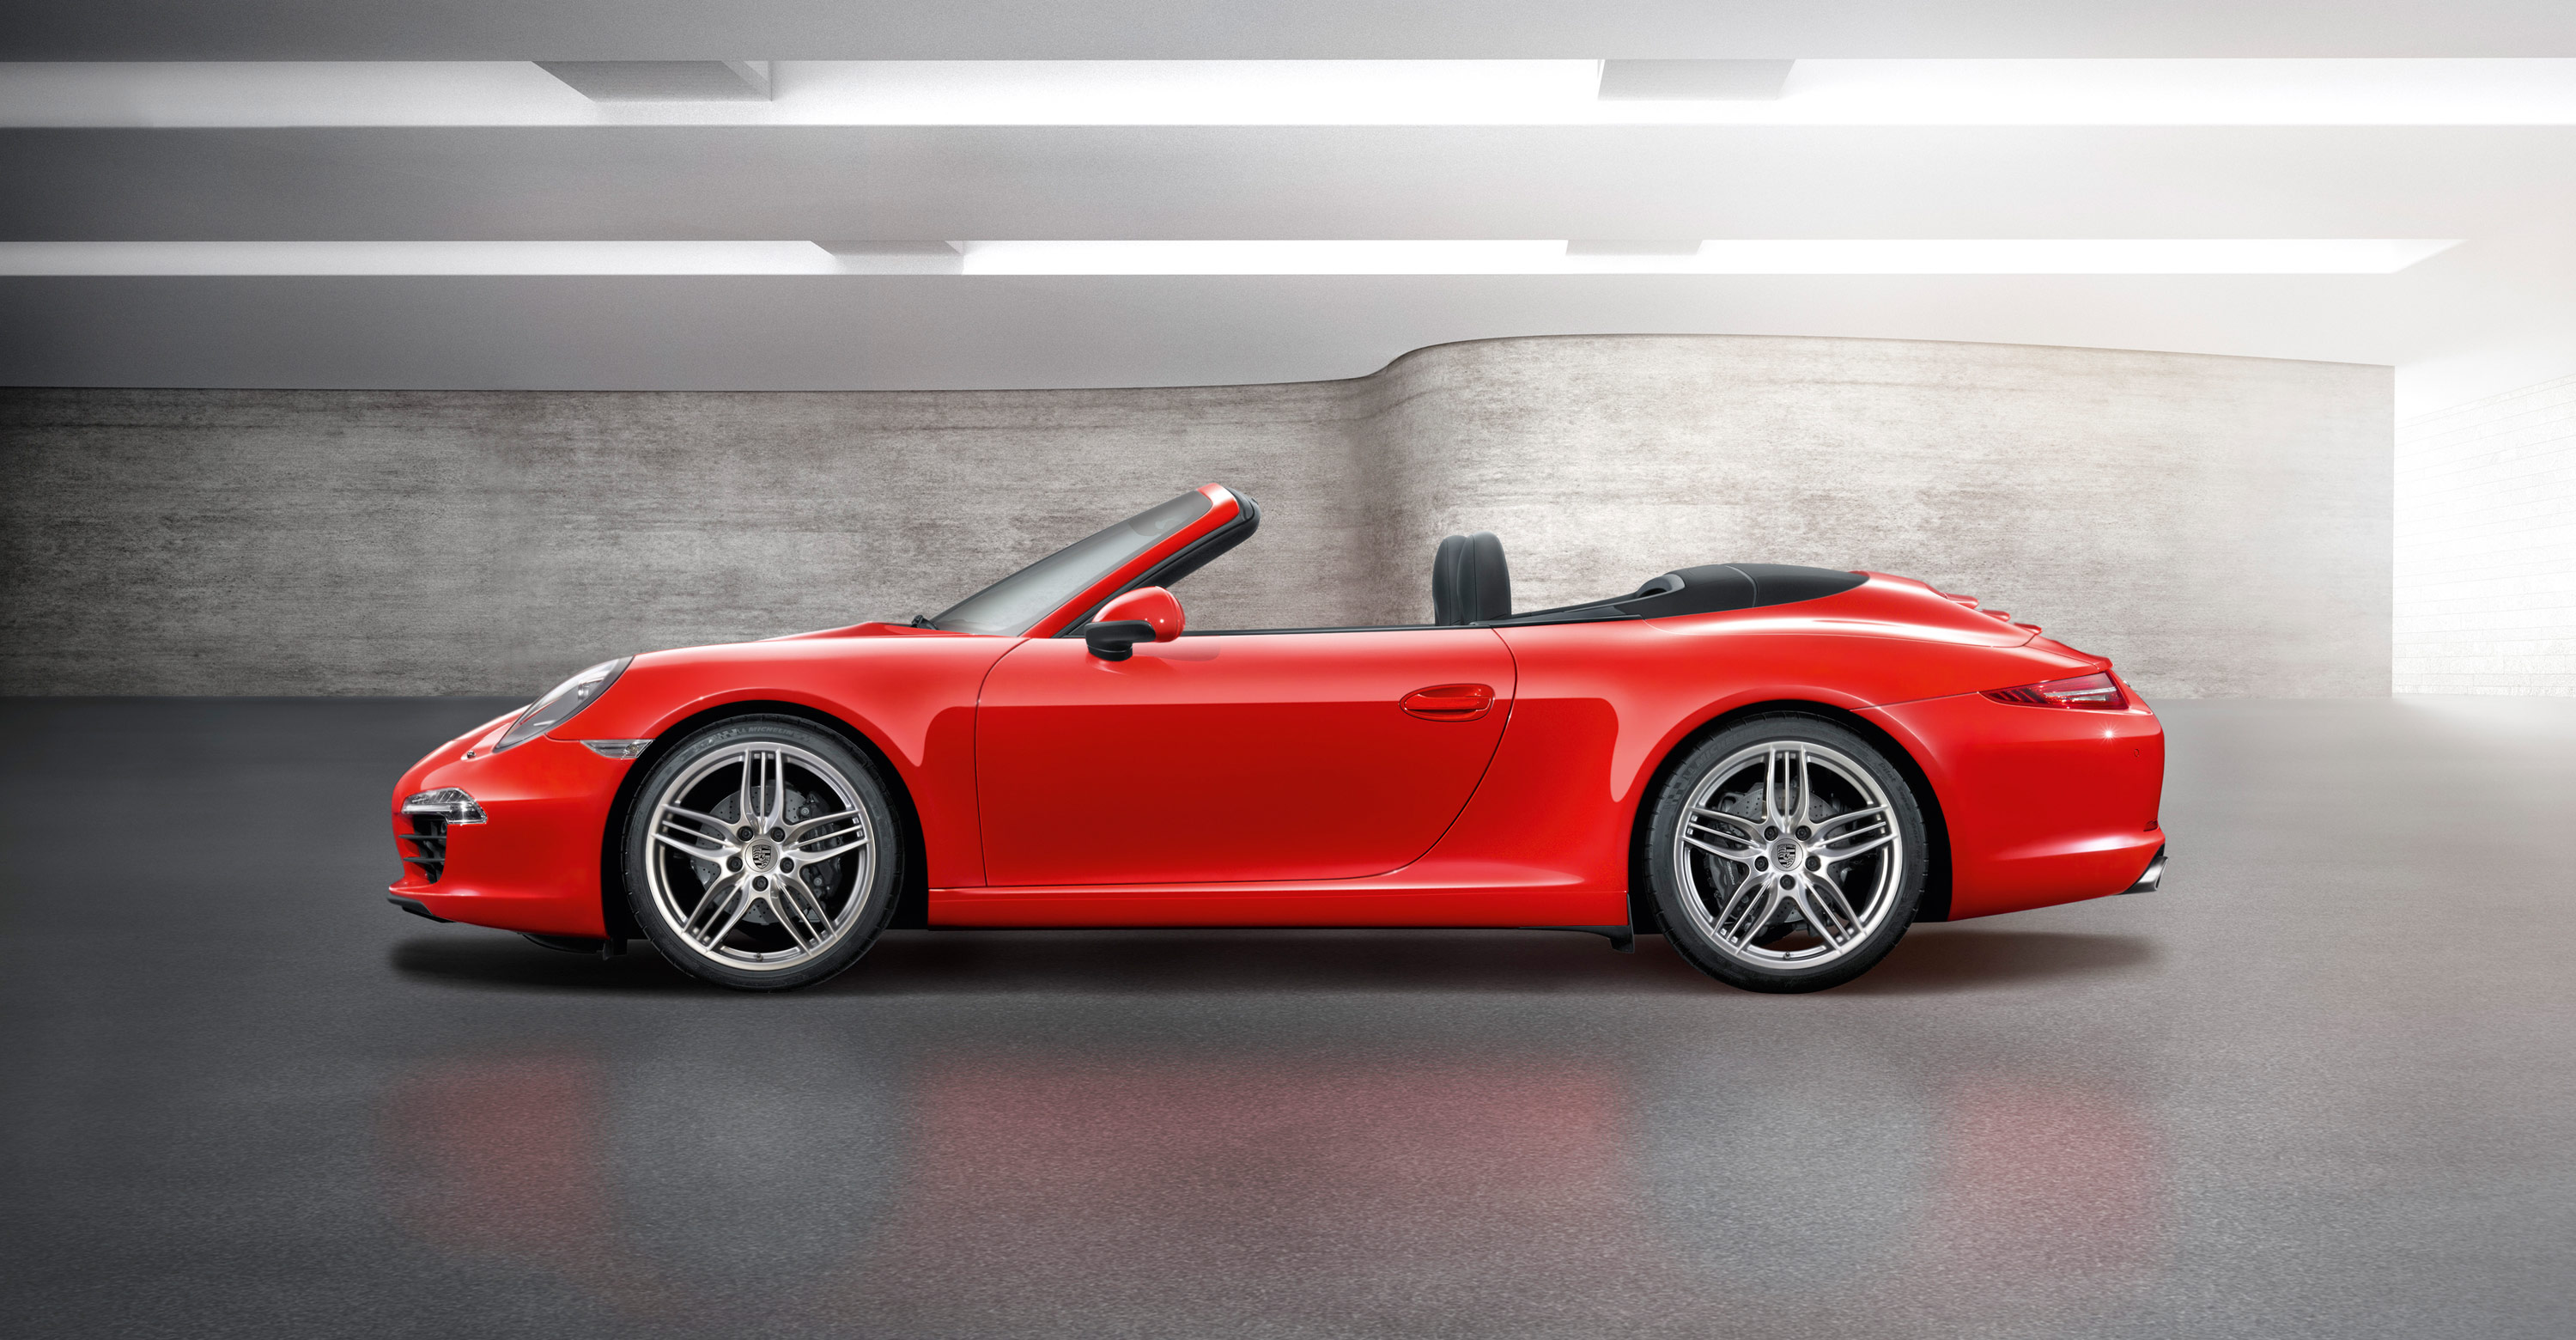 2012 Red Porsche 911 Carrera cabriolet wallpapers 3000x1560